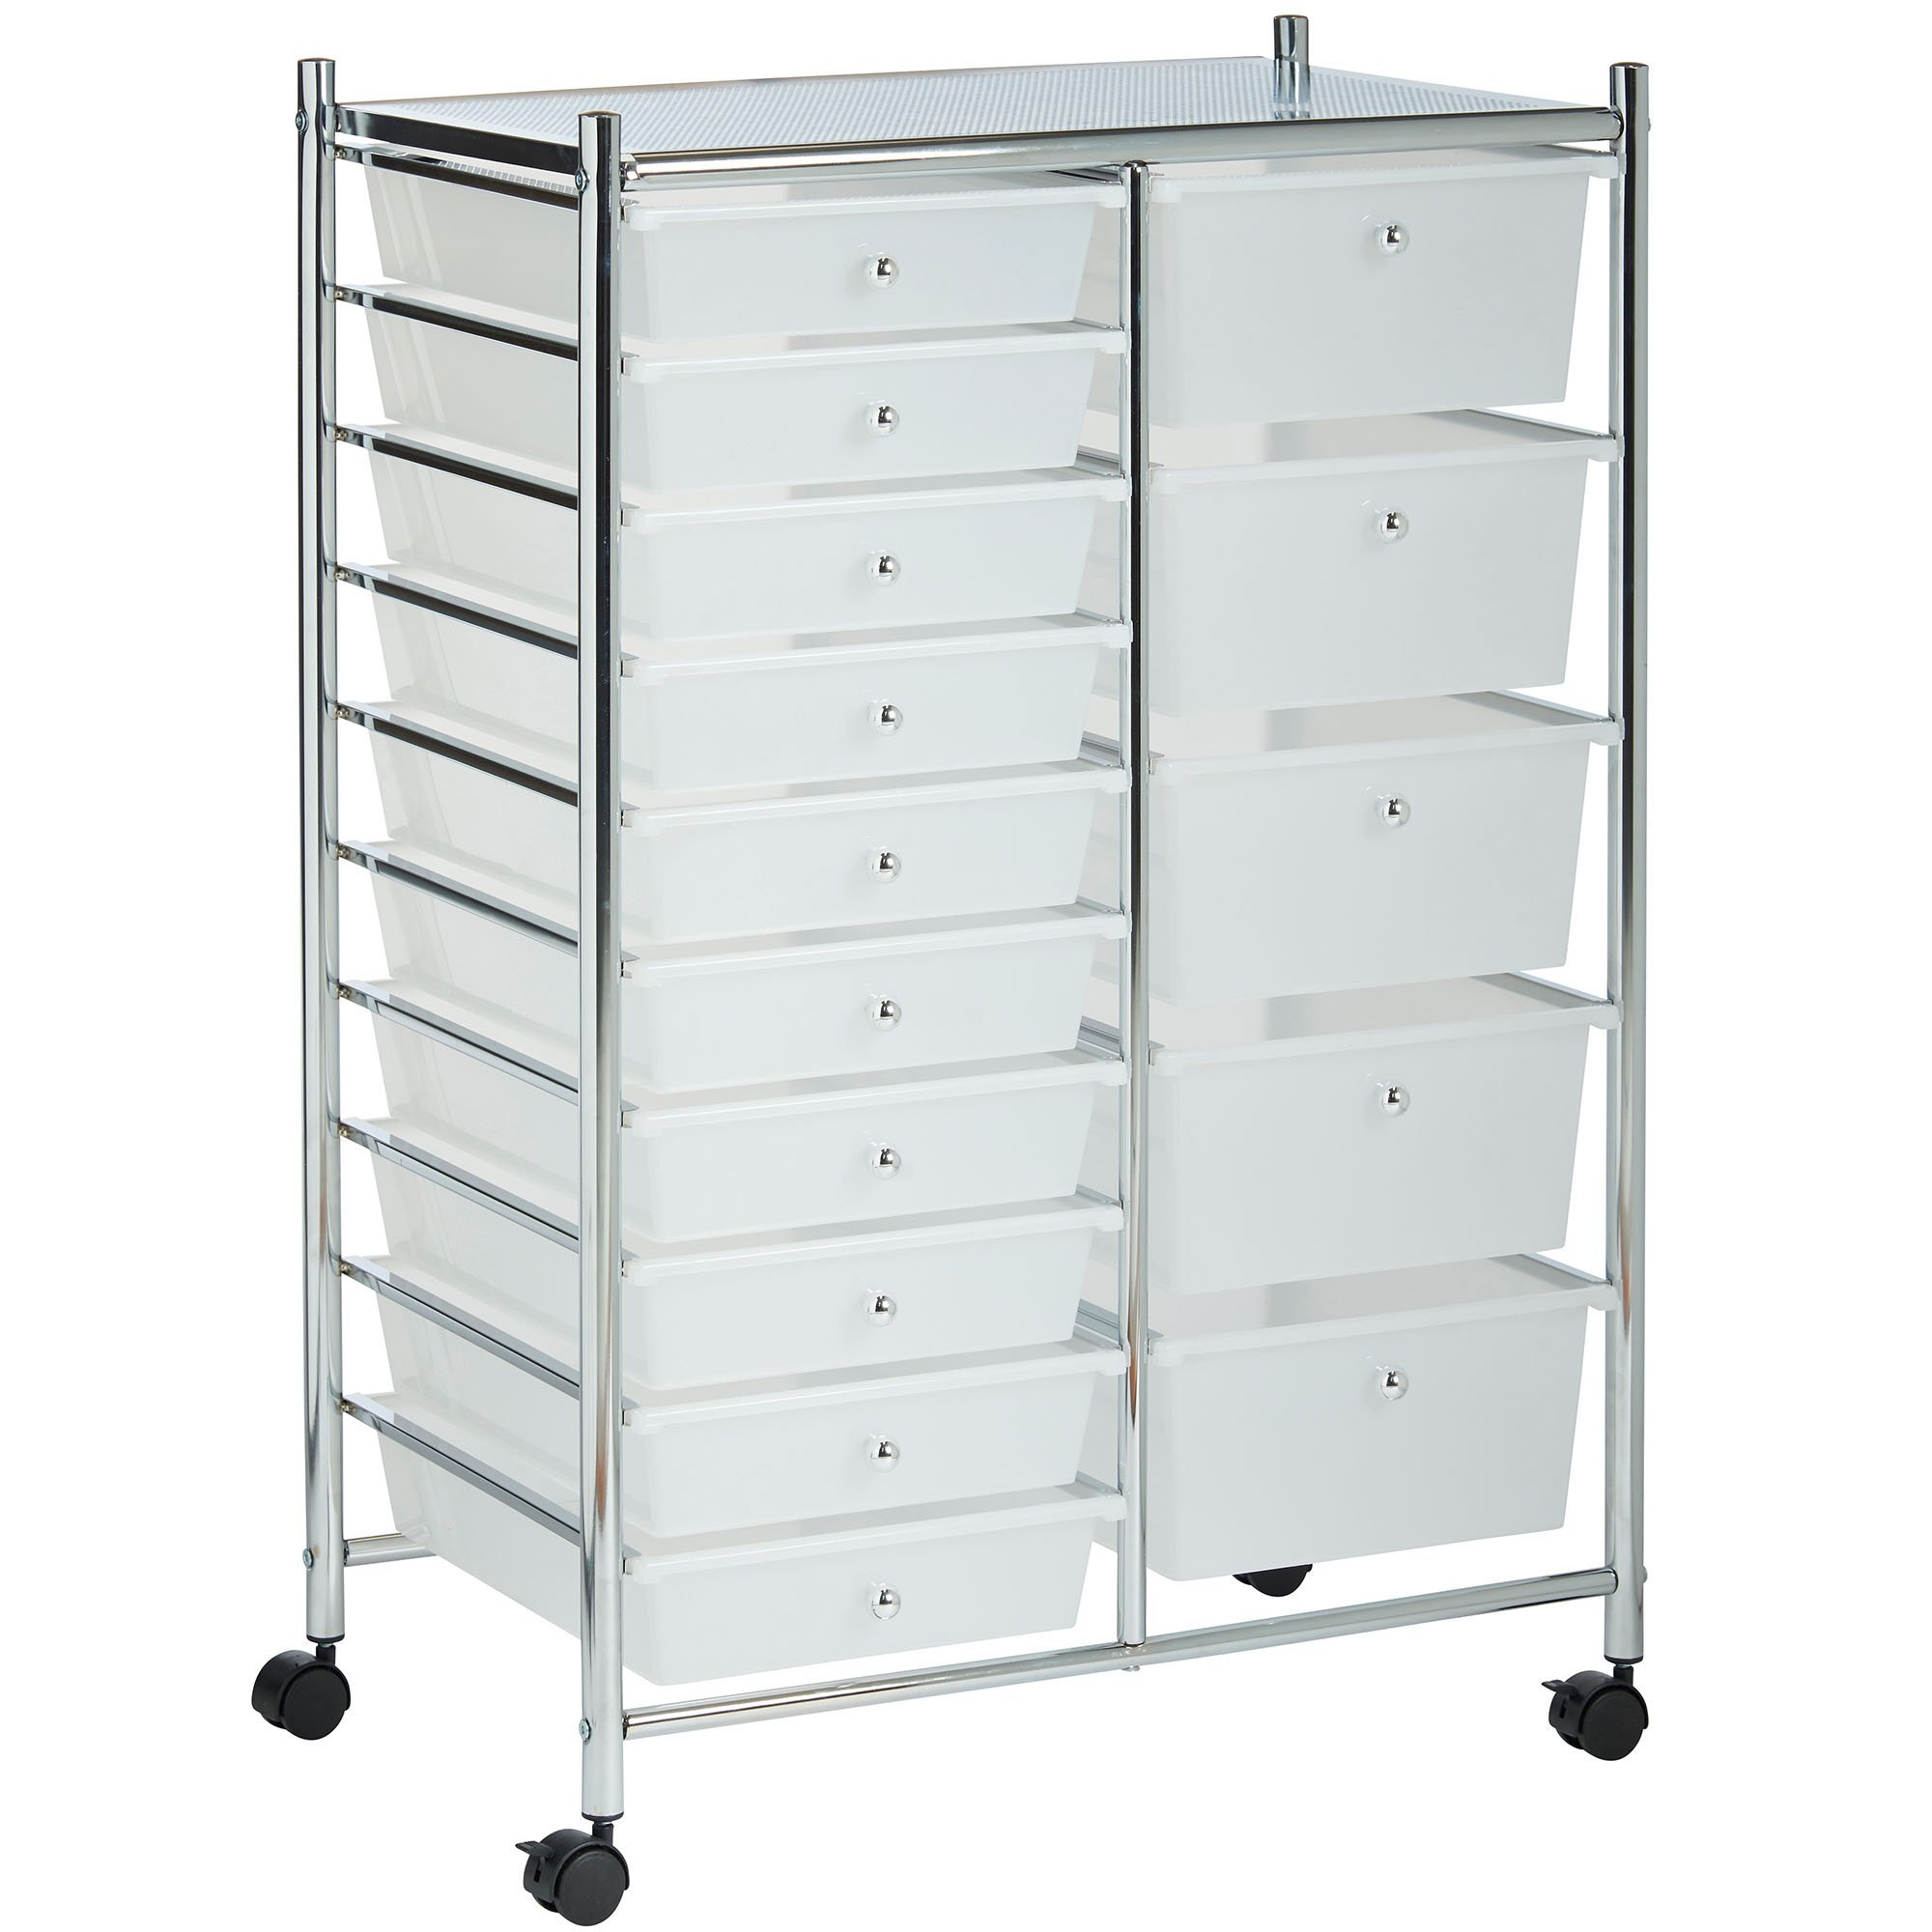 VonHaus 15 Drawer Storage Trolley | Home Office Supplies or Make-up u0026 Beauty Accessories  sc 1 st  Amazon UK & Storage Drawers for Crafts: Amazon.co.uk